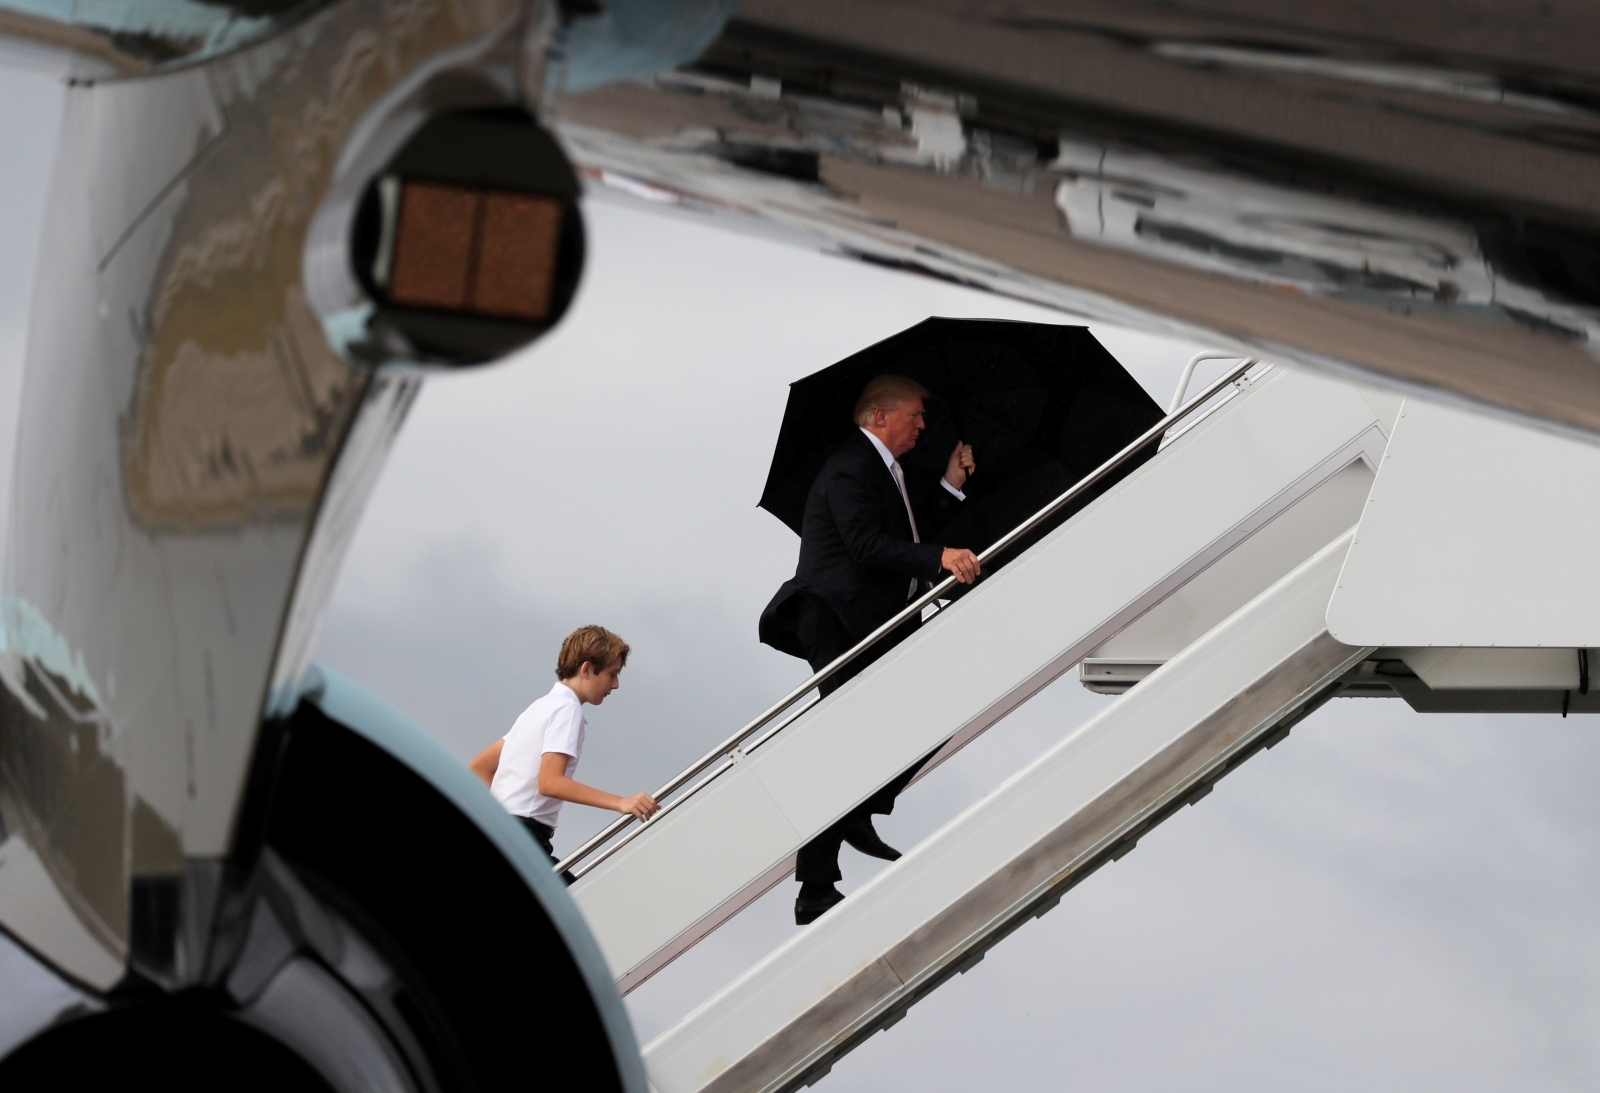 US President Donald Trump and his son Barron with his wife Melania behind (out of shot) board Air Force One as he departs West Palm Beach, Florida